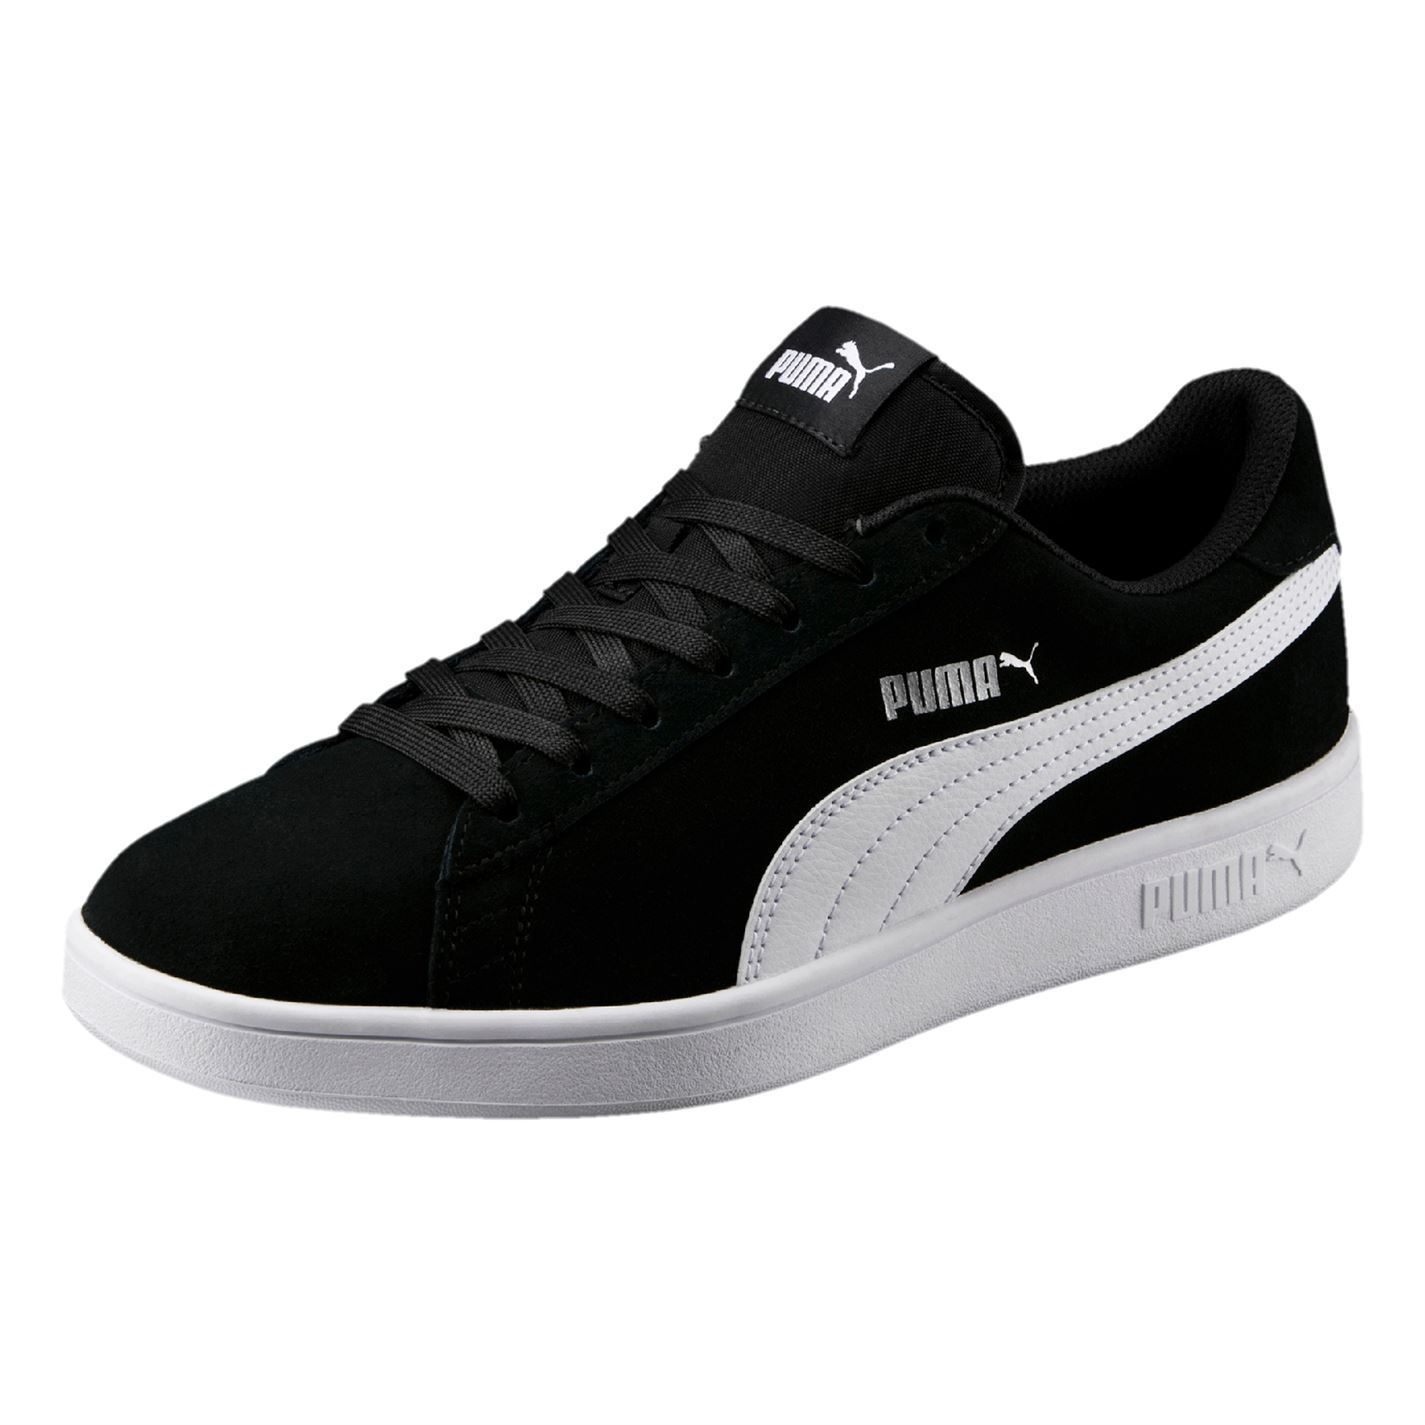 Puma-Smash-V2-Suede-Trainers-Mens-Shoes-Sneakers-Athleisure-Footwear thumbnail 6